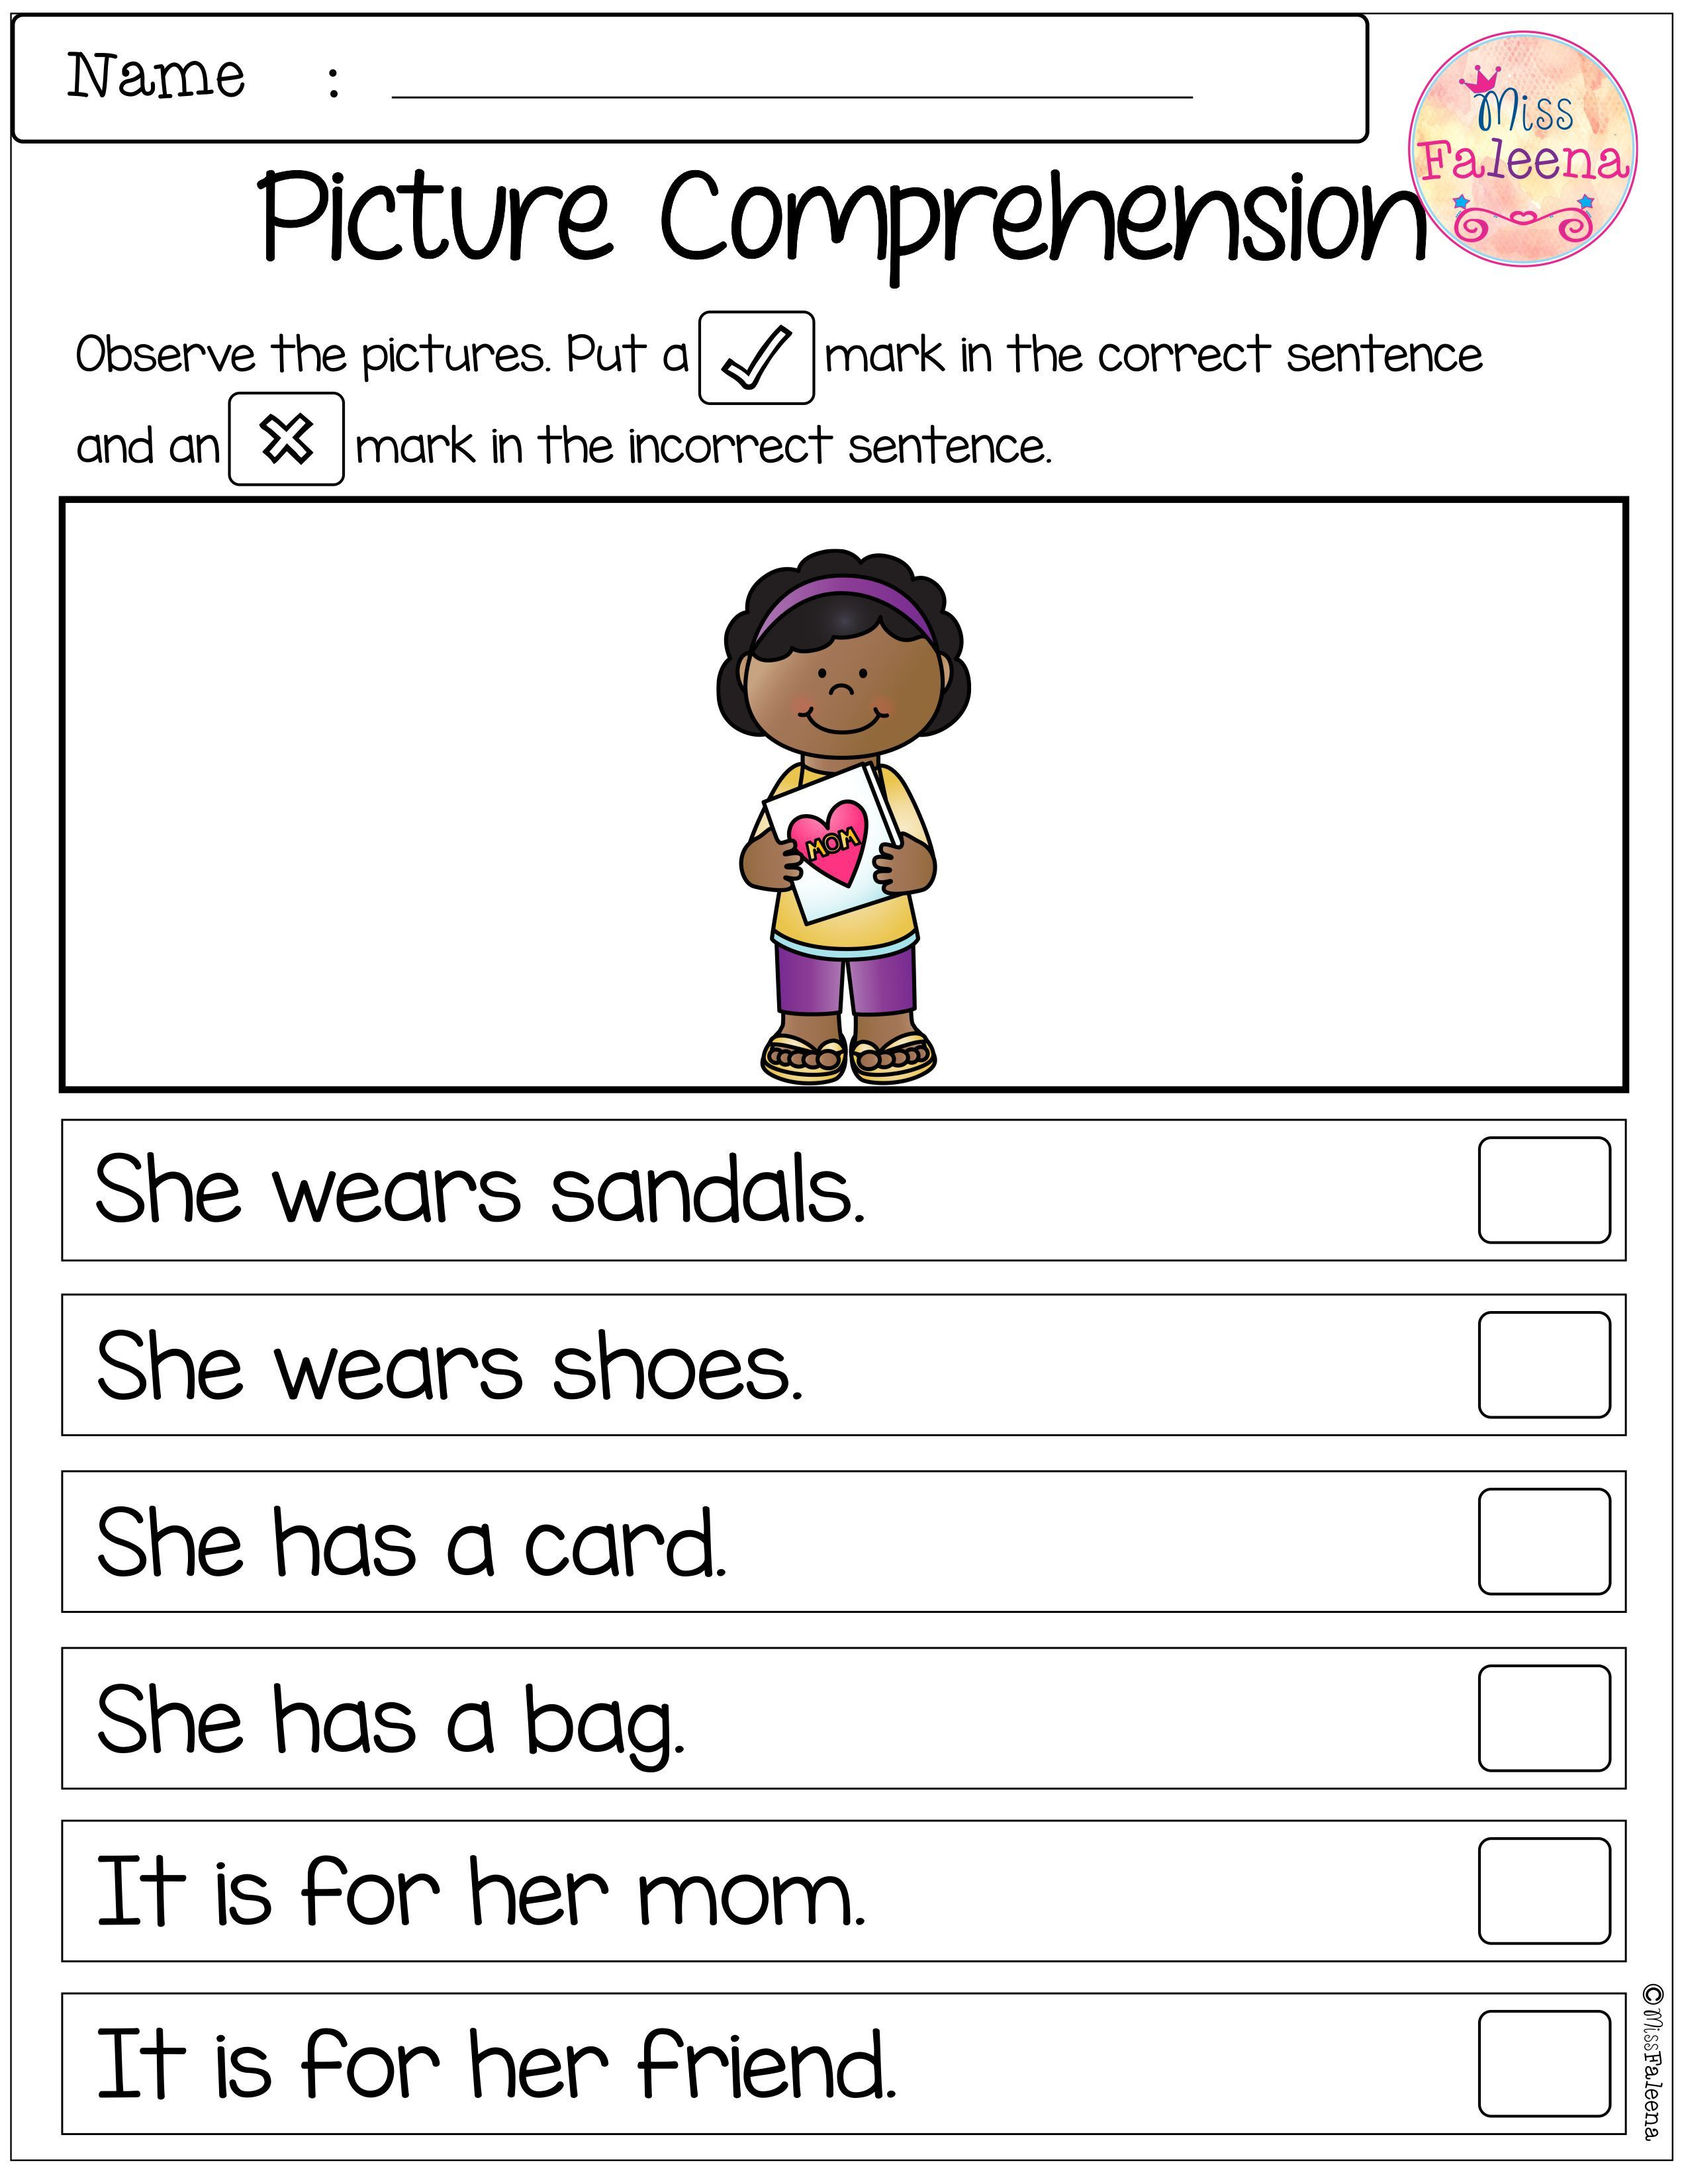 May Picture Comprehension Cards and Worksheets | Teaching Treasures ...